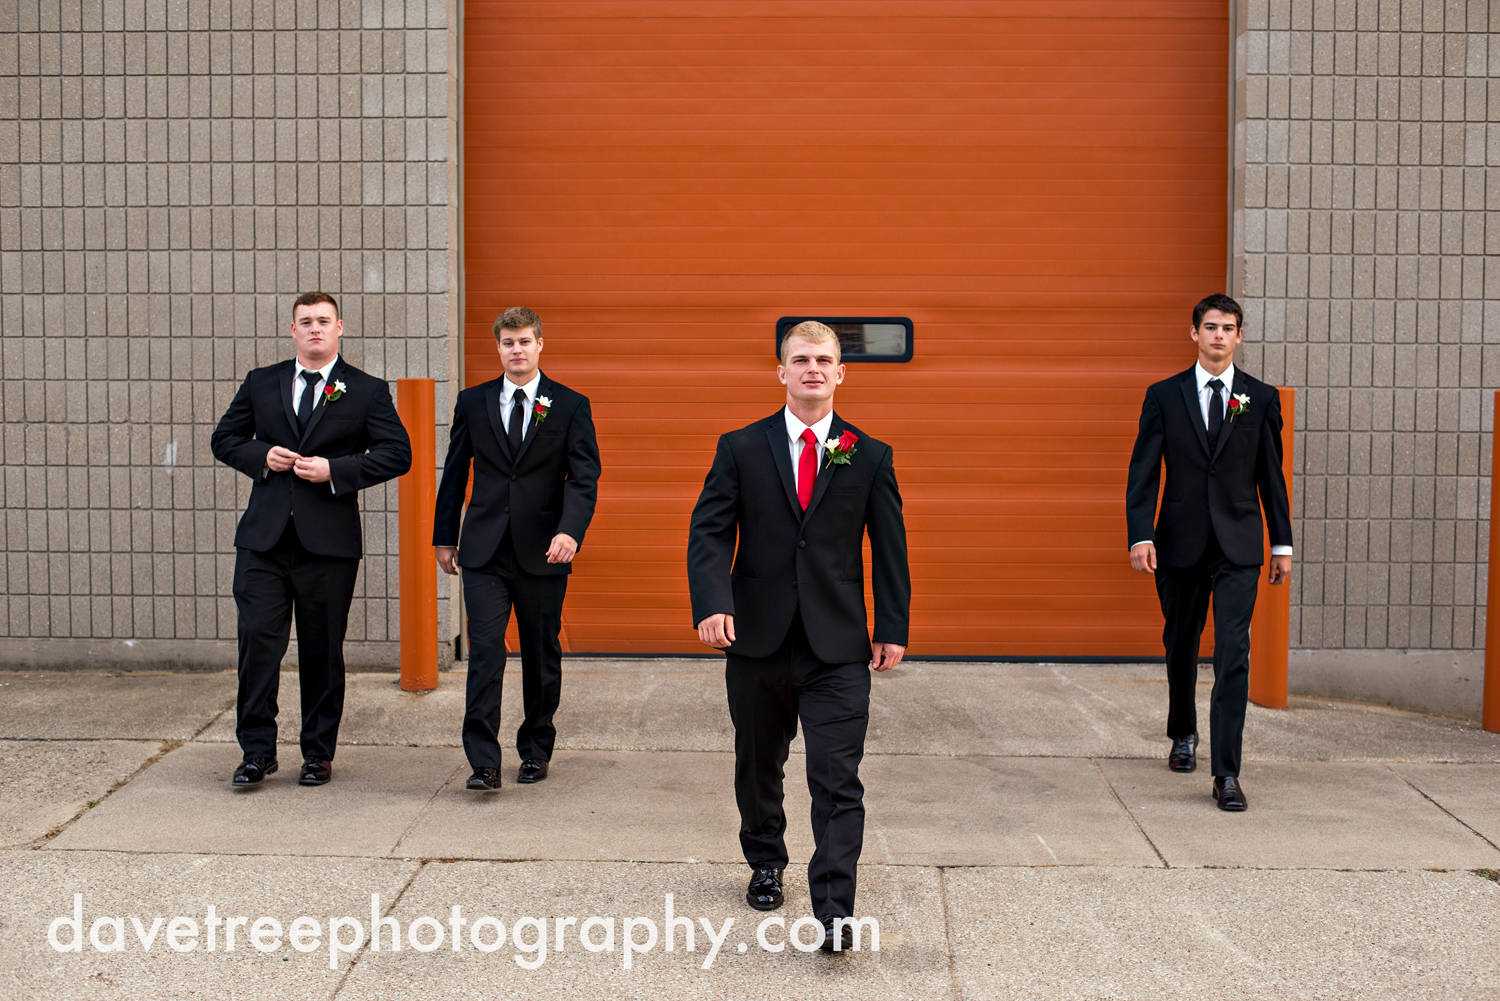 holland_wedding_photographer_64.jpg